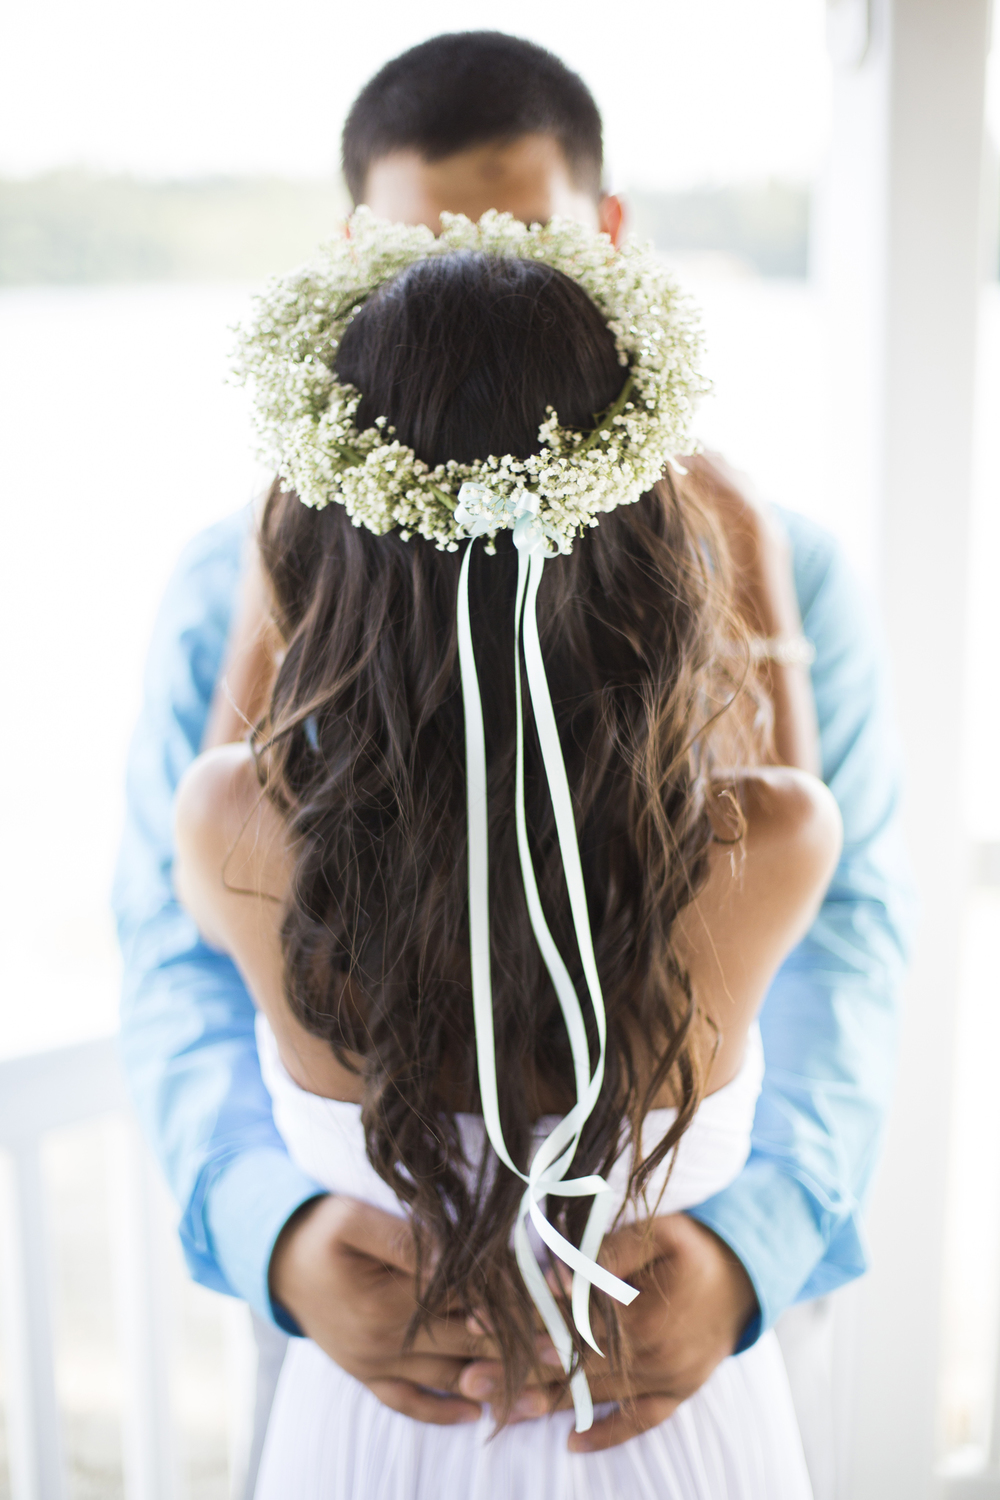 Jaeda-Reed-Wedding-MD-Bridal-Flower-Wreath.jpg